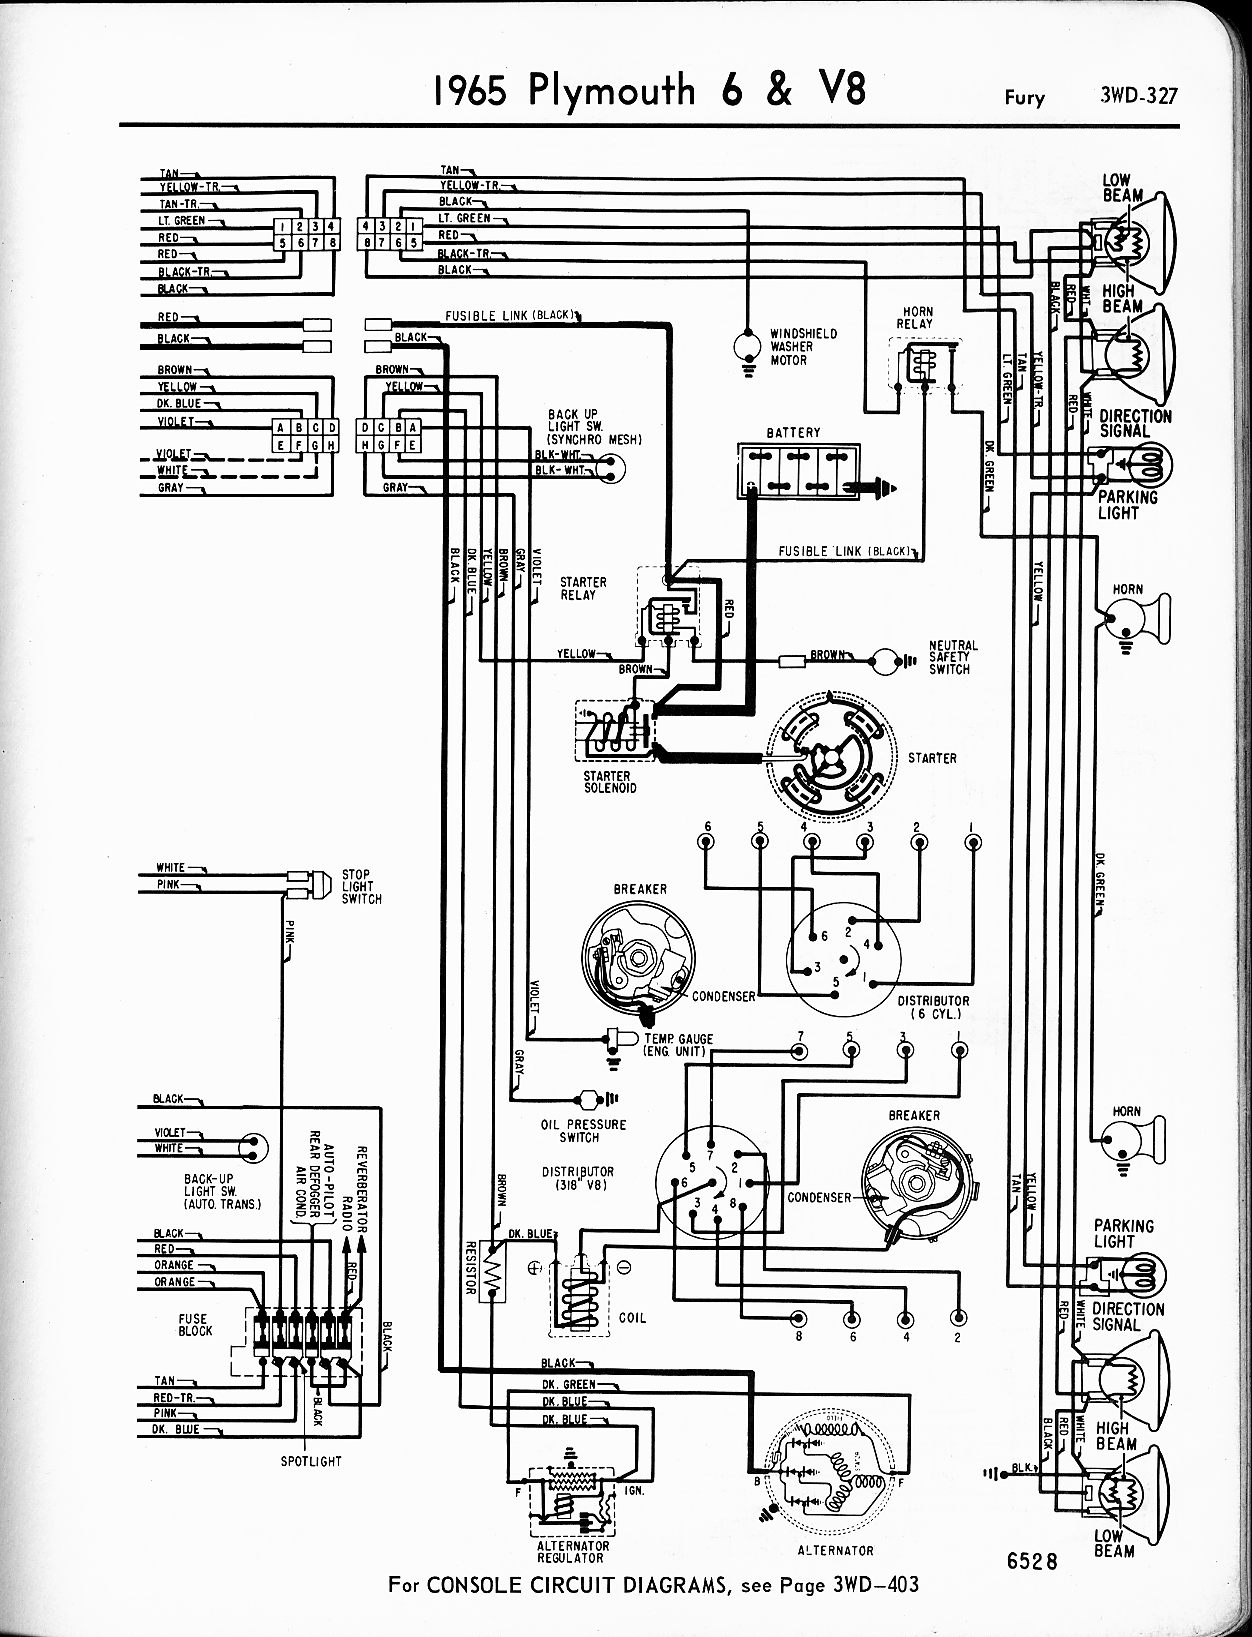 71 Barracuda Wiring Diagram - Www.casei.store • on pink barracuda, custom barracuda, green barracuda, craigslist barracuda, black barracuda, hemi barracuda,